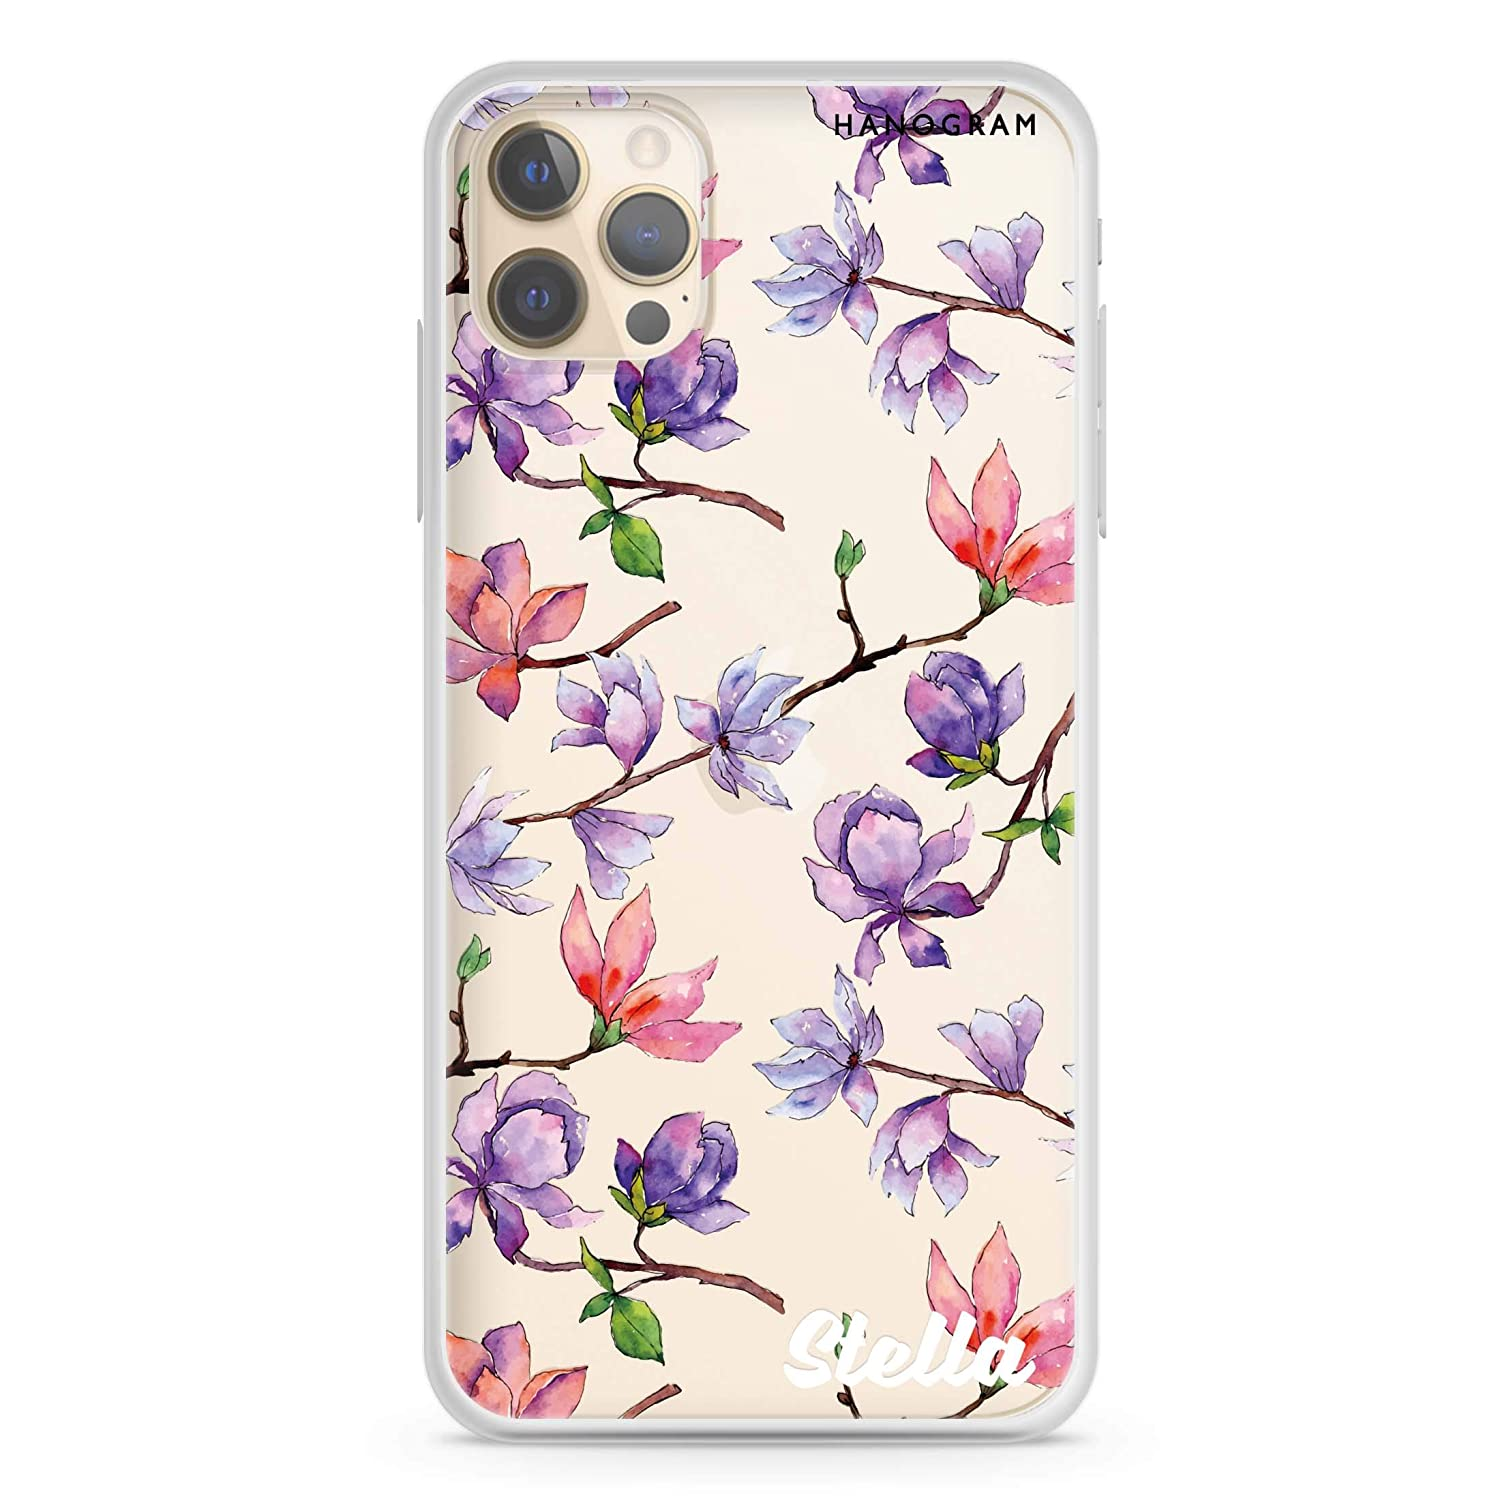 Colour Same day shipping In Over item handling Spring iPhone 12 Pro i Max Soft Clear Case